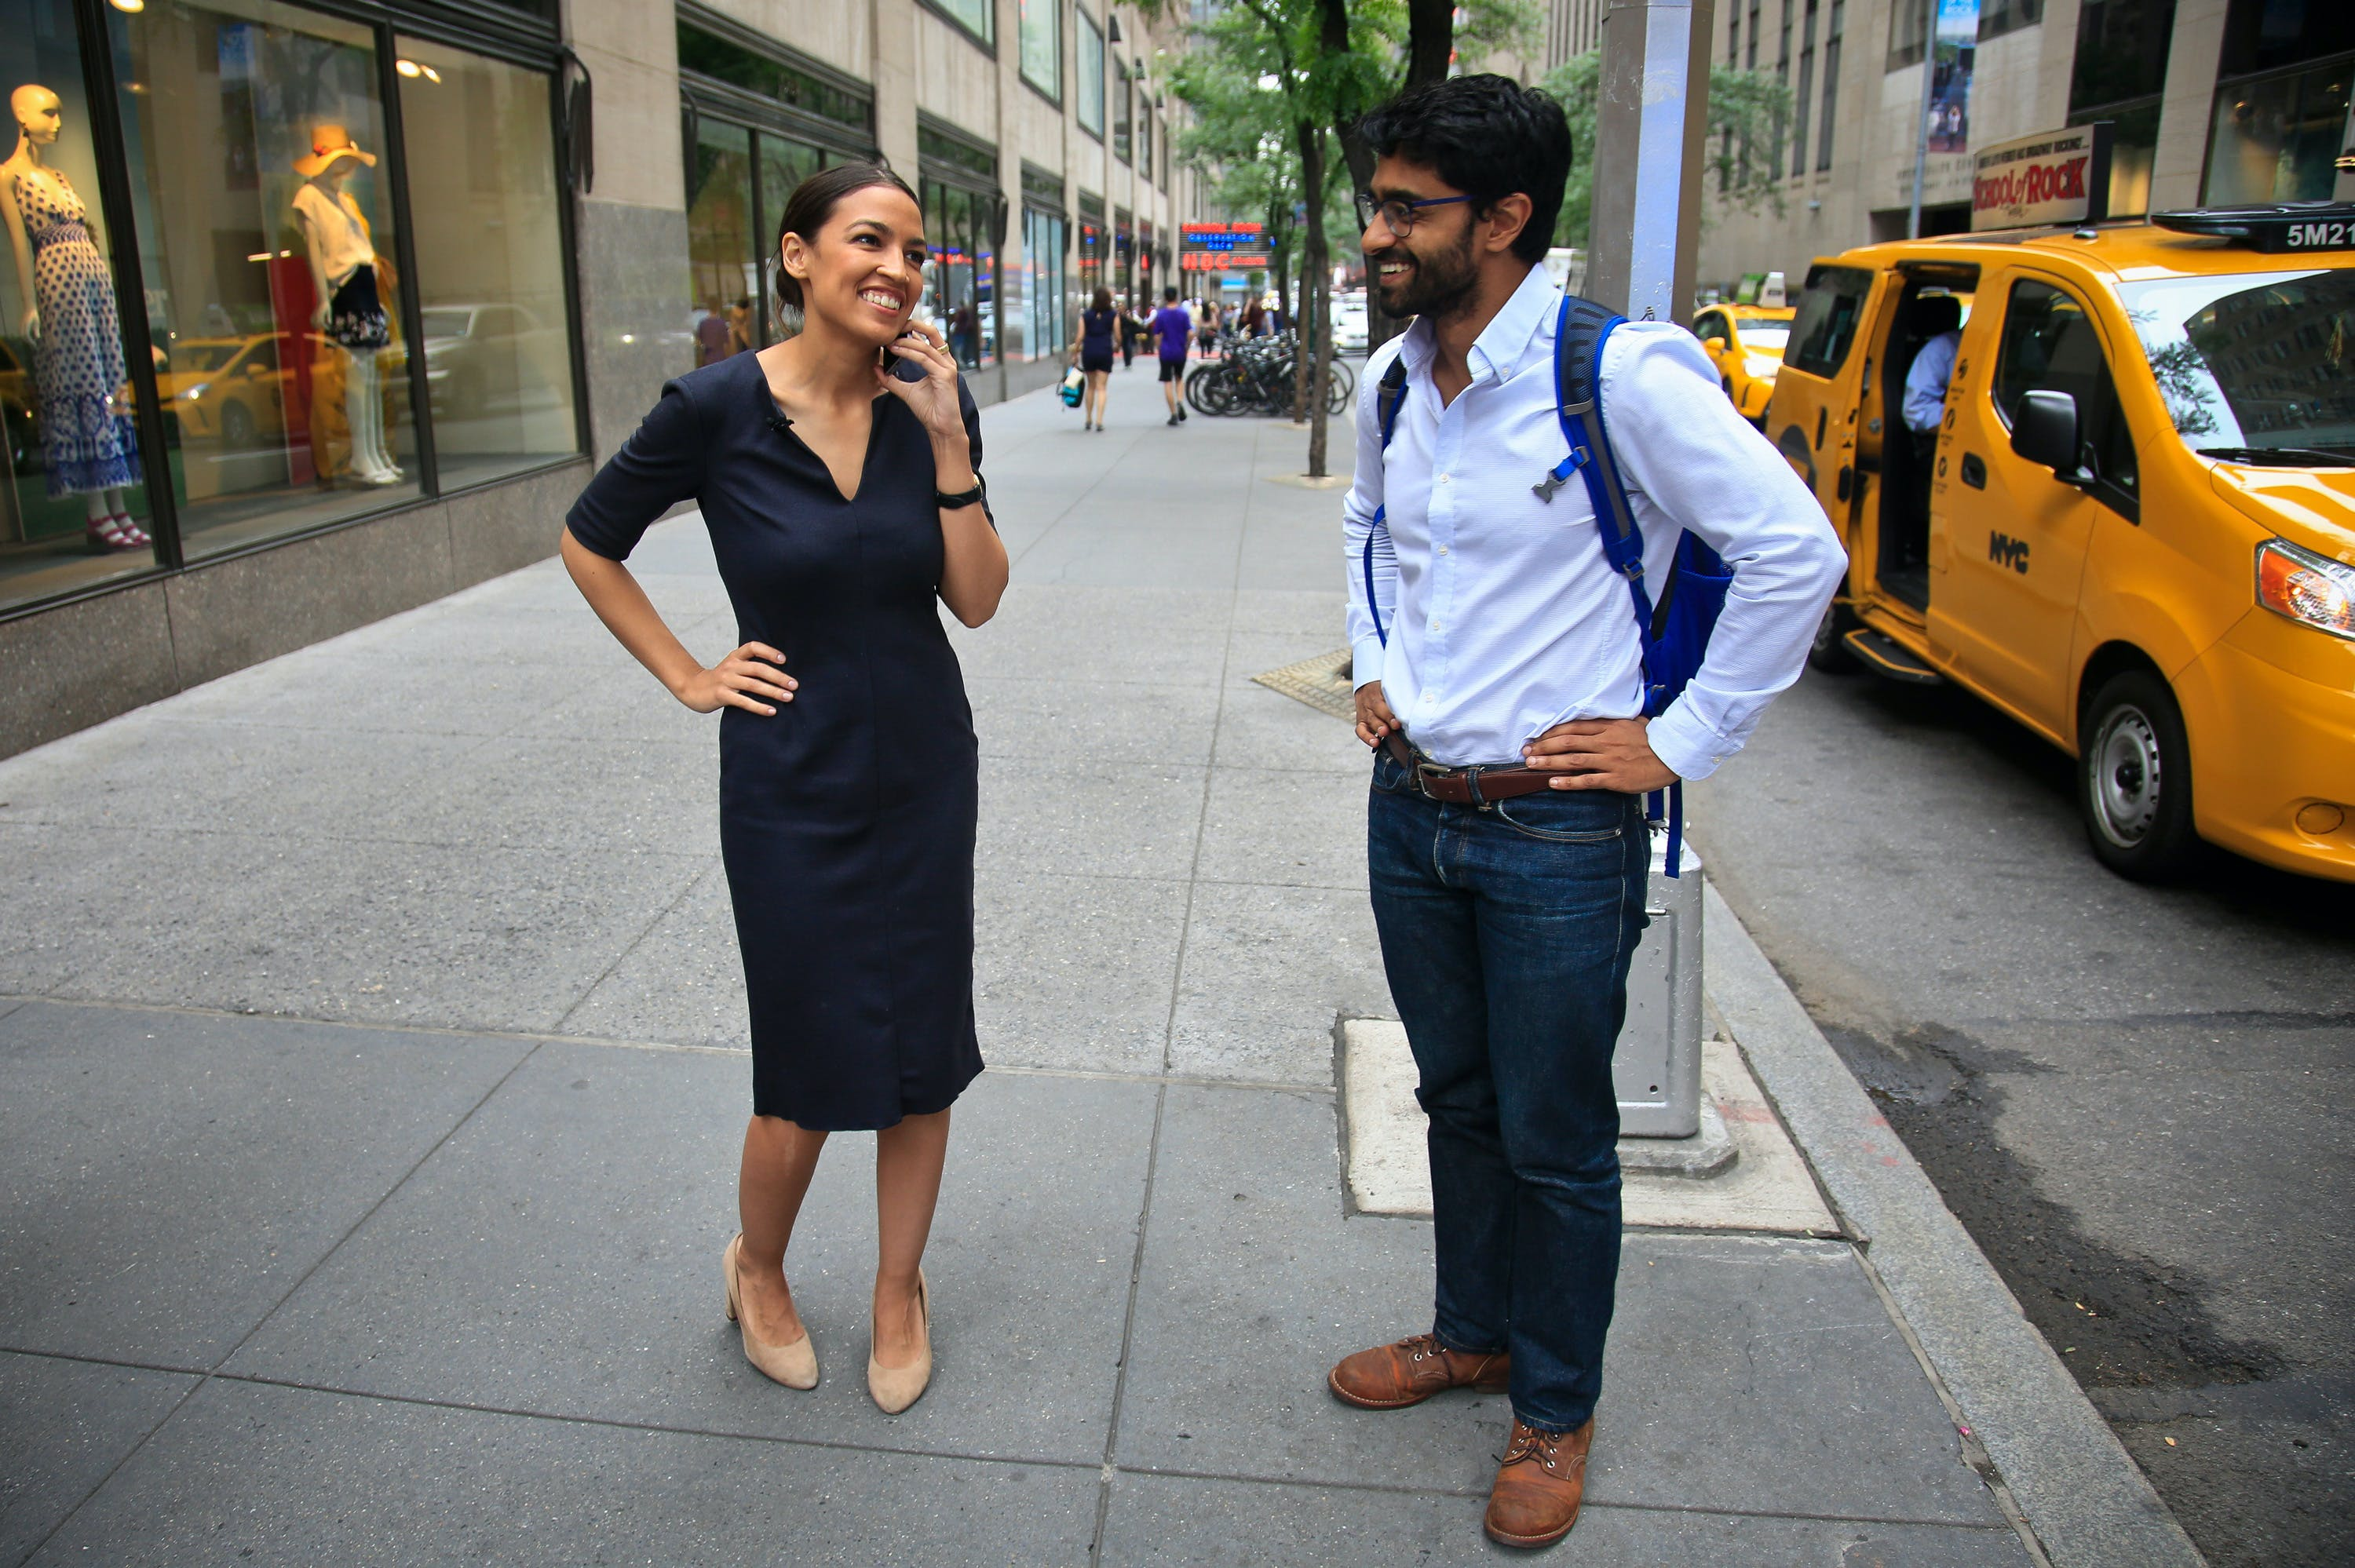 "Alexandria Ocasio-Cortez, left, the winner of the Democratic primary in New York's 14th Congressional District, speaks on a phone as Saikat Chakrabarti, her senior campaign adviser stands by, Wednesday, June 27, 2018, in New York. The 28-year-old political newcomer upset U.S. Rep. Joe Crowley, says she brings an ""urgency"" to the fight for working families.  (AP Photo/Bebeto Matthews)"